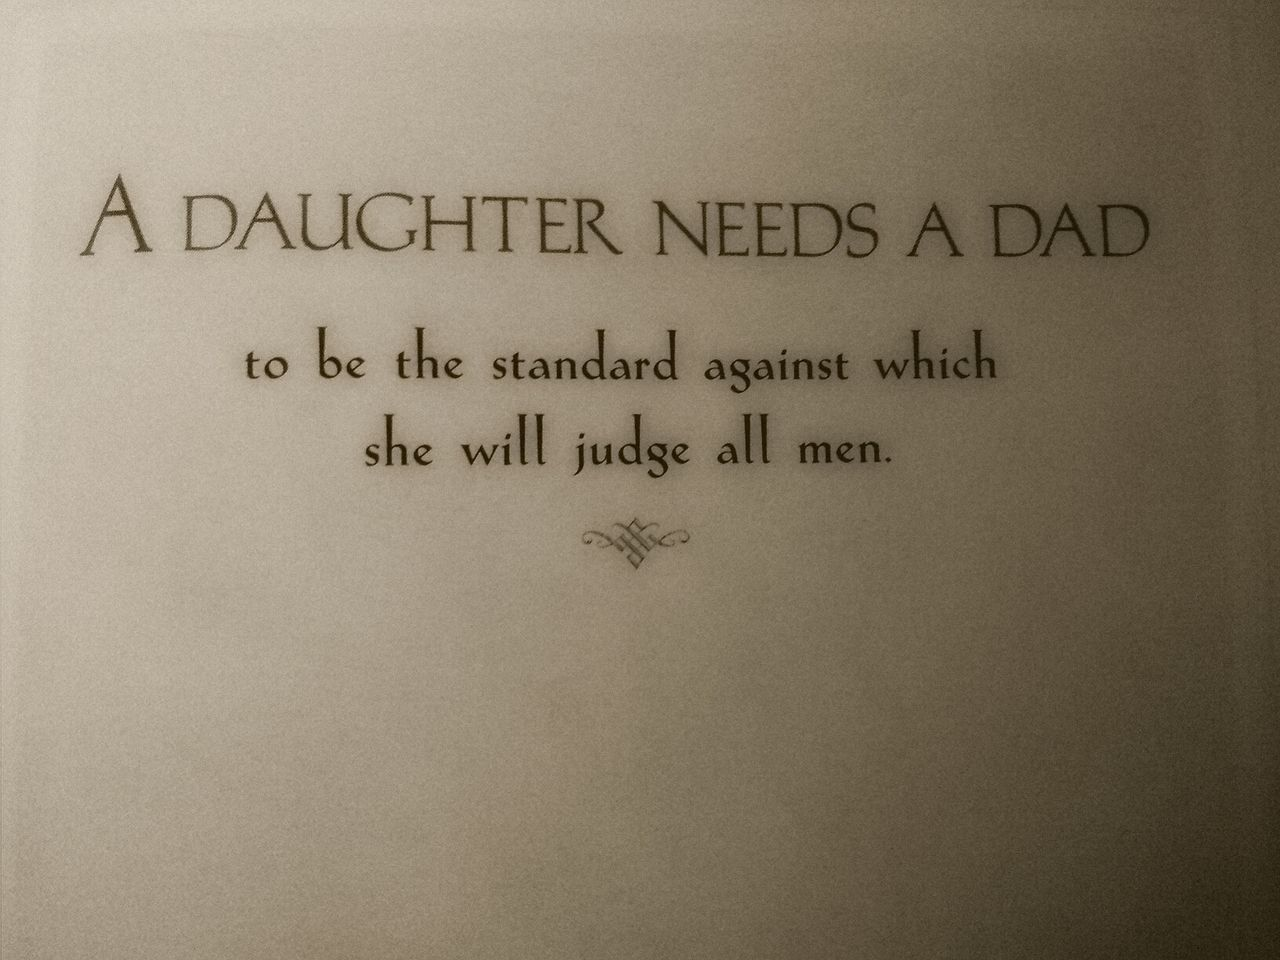 Father Tattoo Quotes May Like Others Hottest Father And Daughter 1280x960